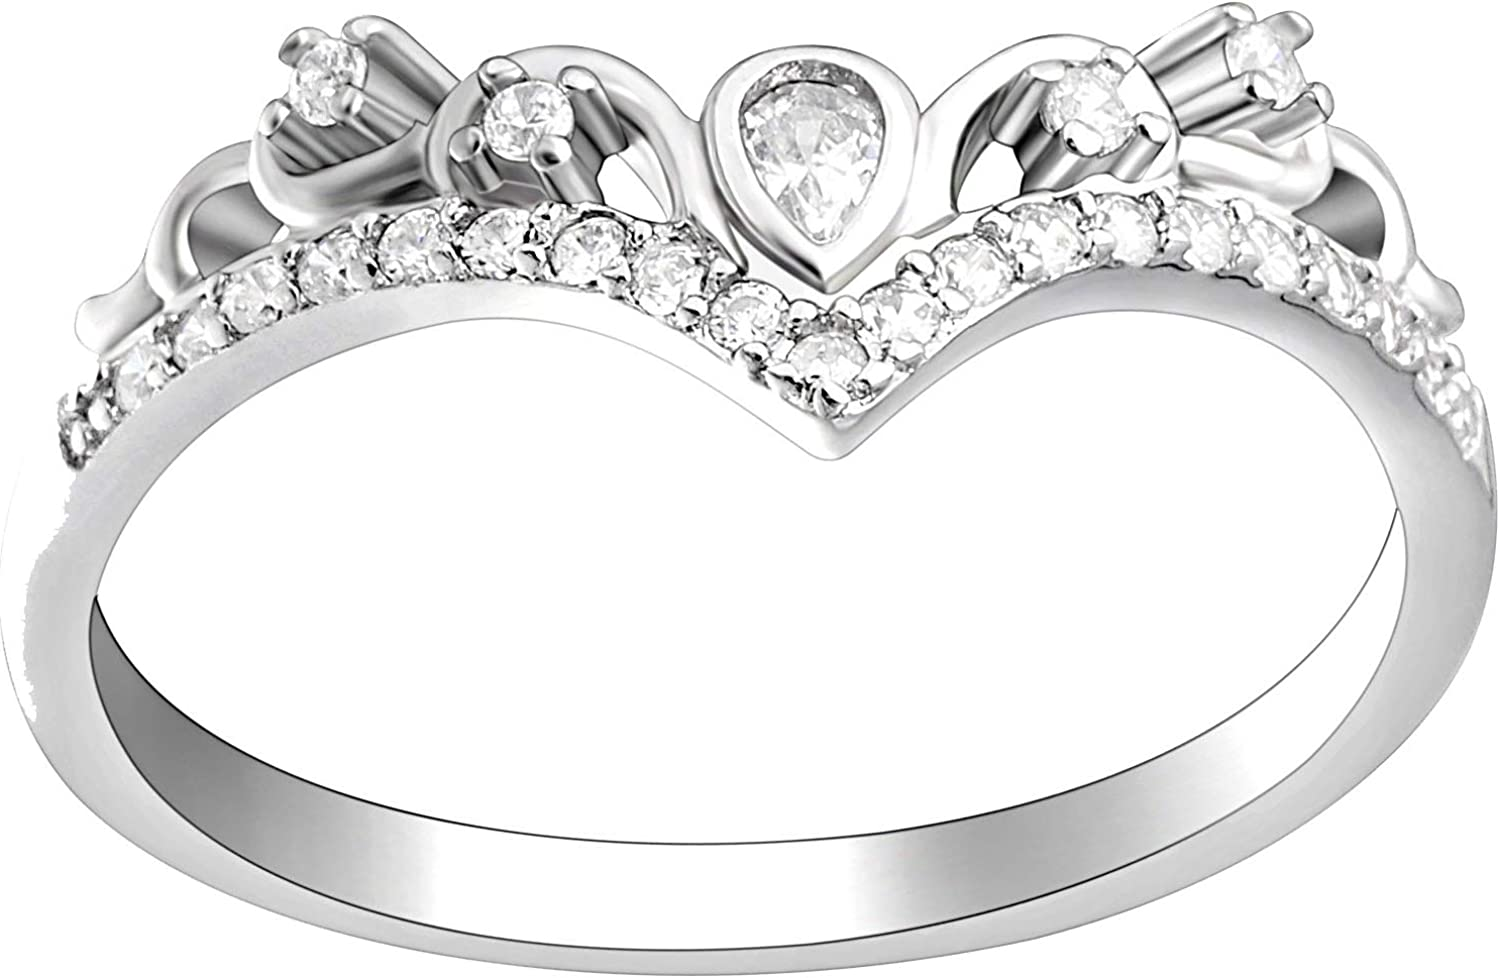 Tori Anniversary Band Wedding Ring for Women Enchancer Bridal Jewelry by Ginger Lyne Cubic Zirconia Sterling Silver Promise Engagement